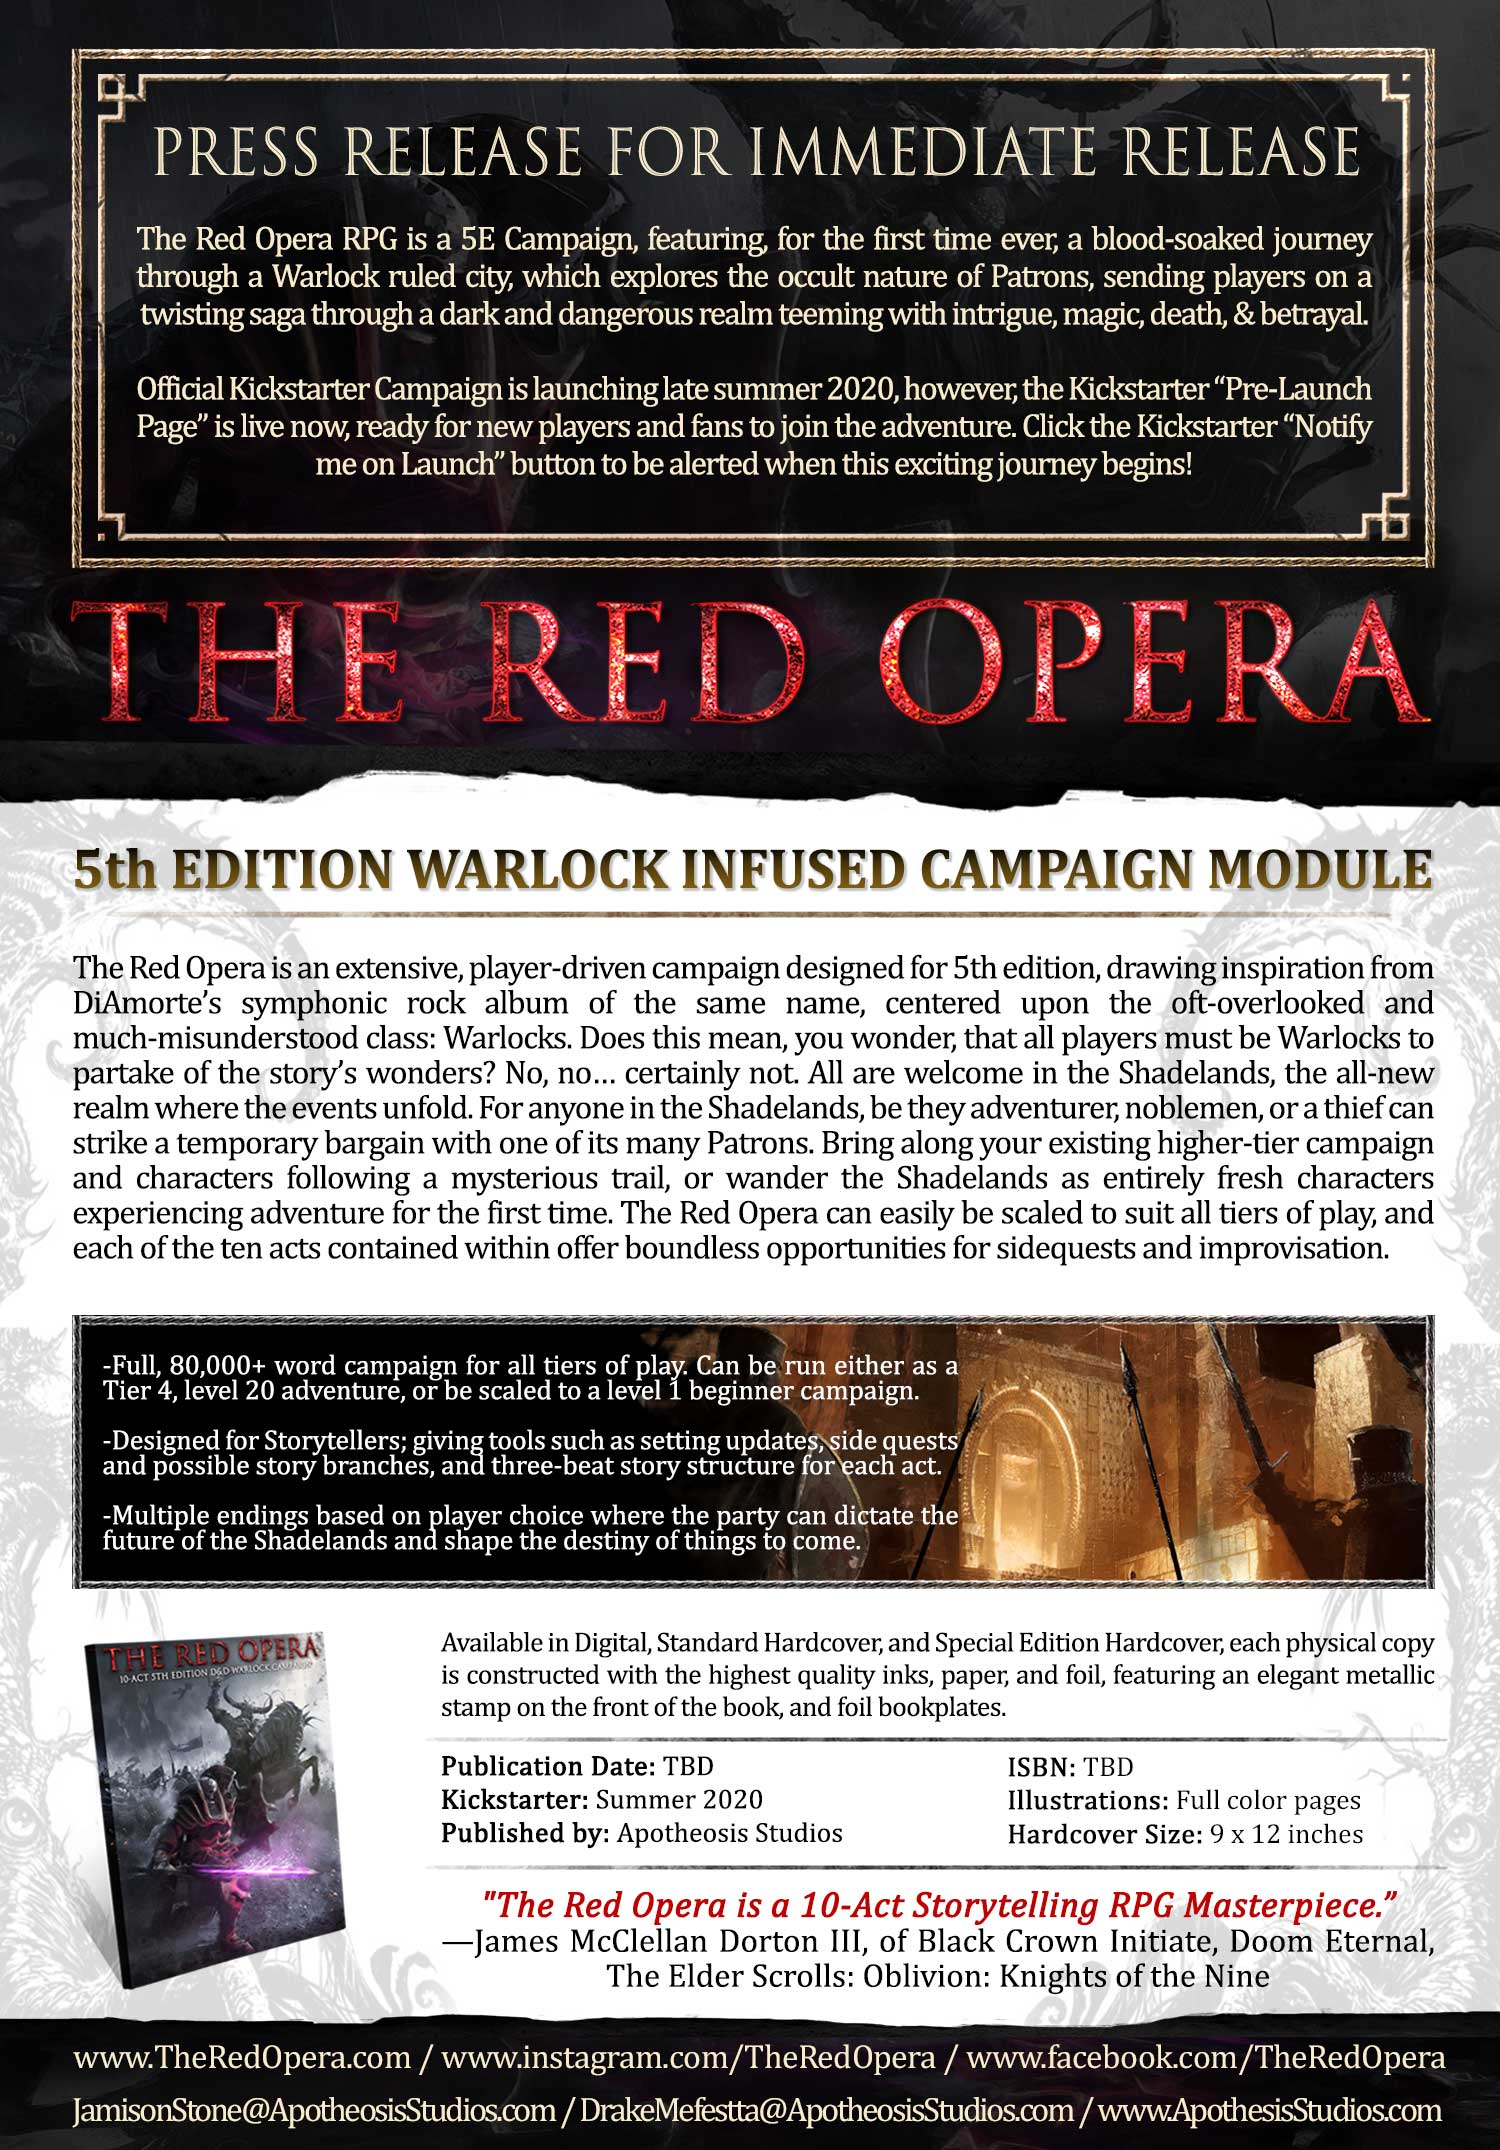 The Red Opera RPG is a 5E Campaign, featuring, for the first time ever, a blood-soaked journey through a Warlock ruled city, teeming with magic, & betrayal.